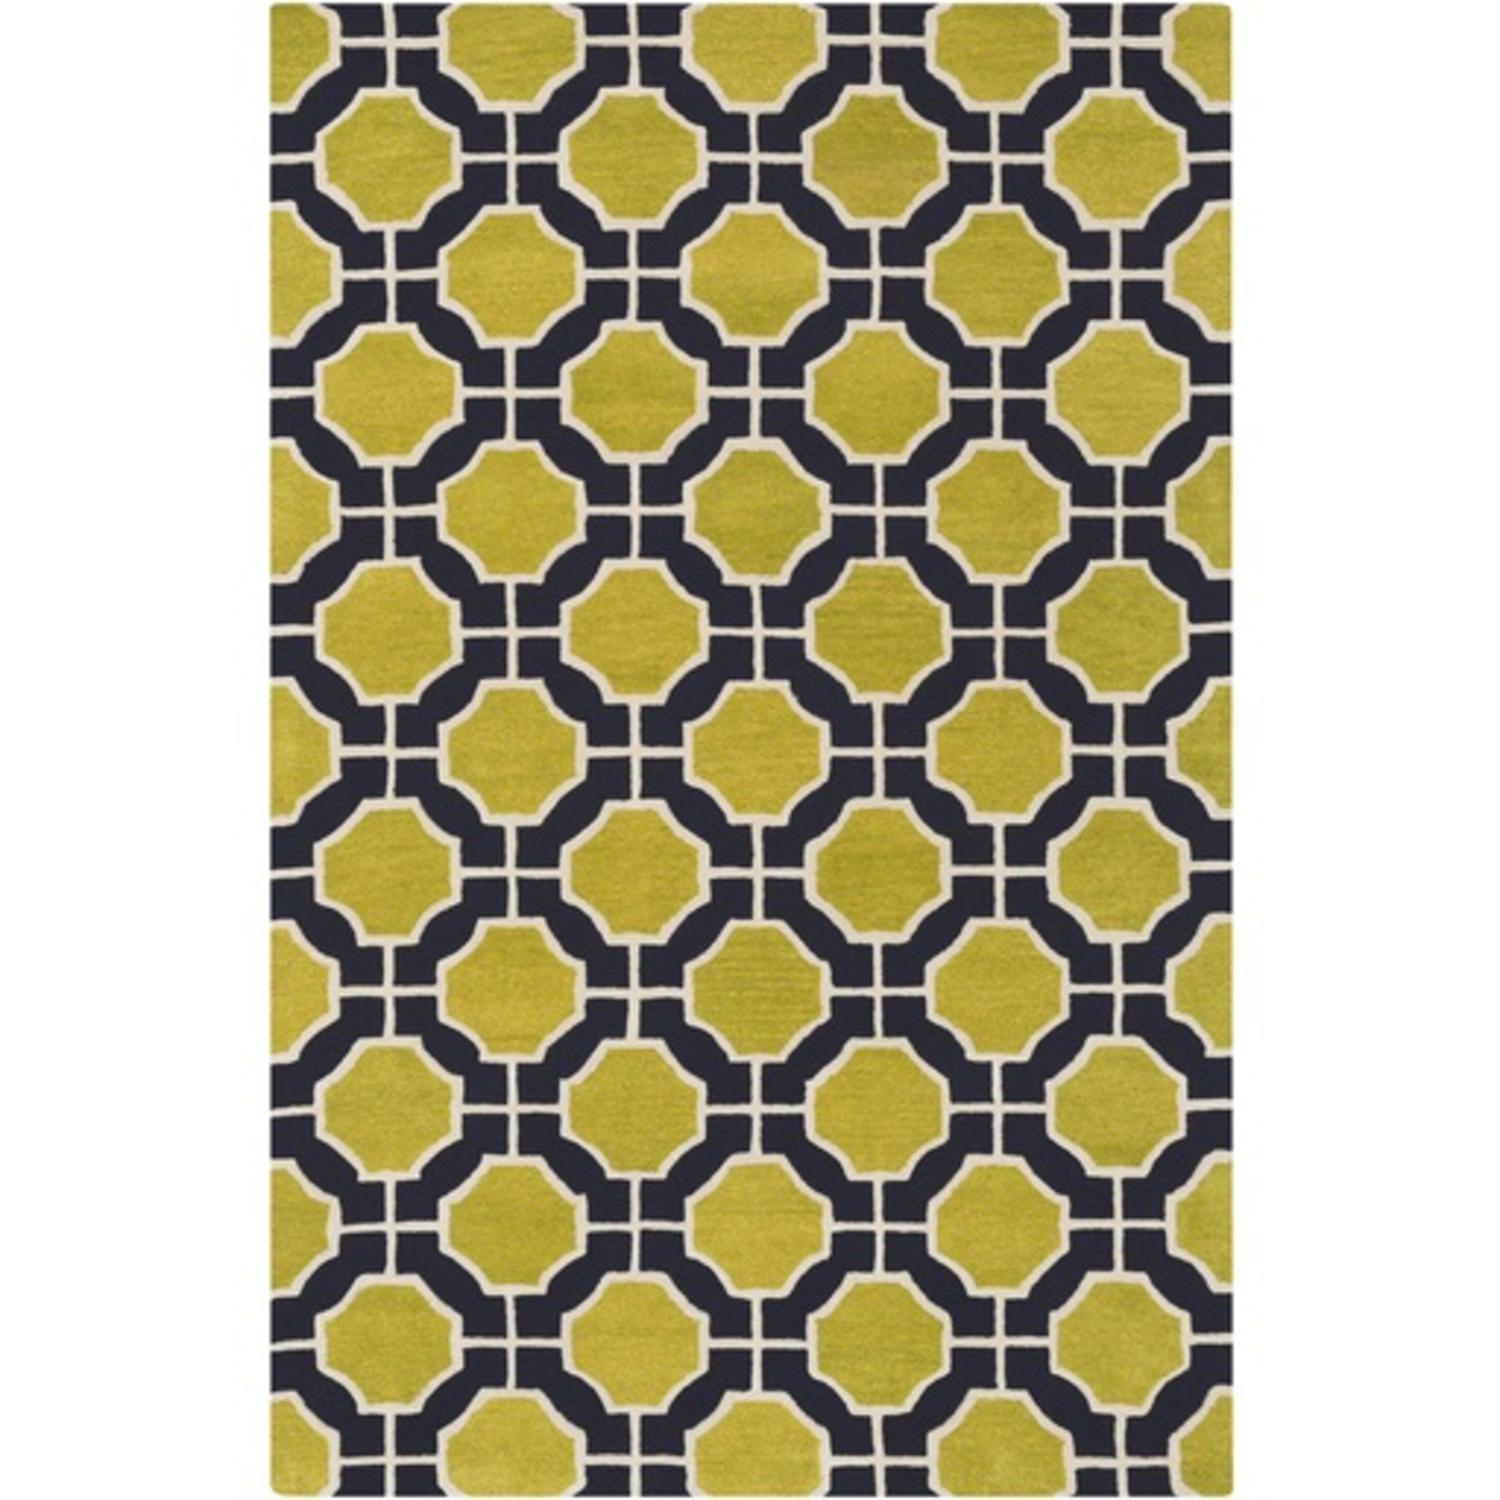 5' x 8' Octo Placid Electric Green, Ivory White and Black Area Throw Rug